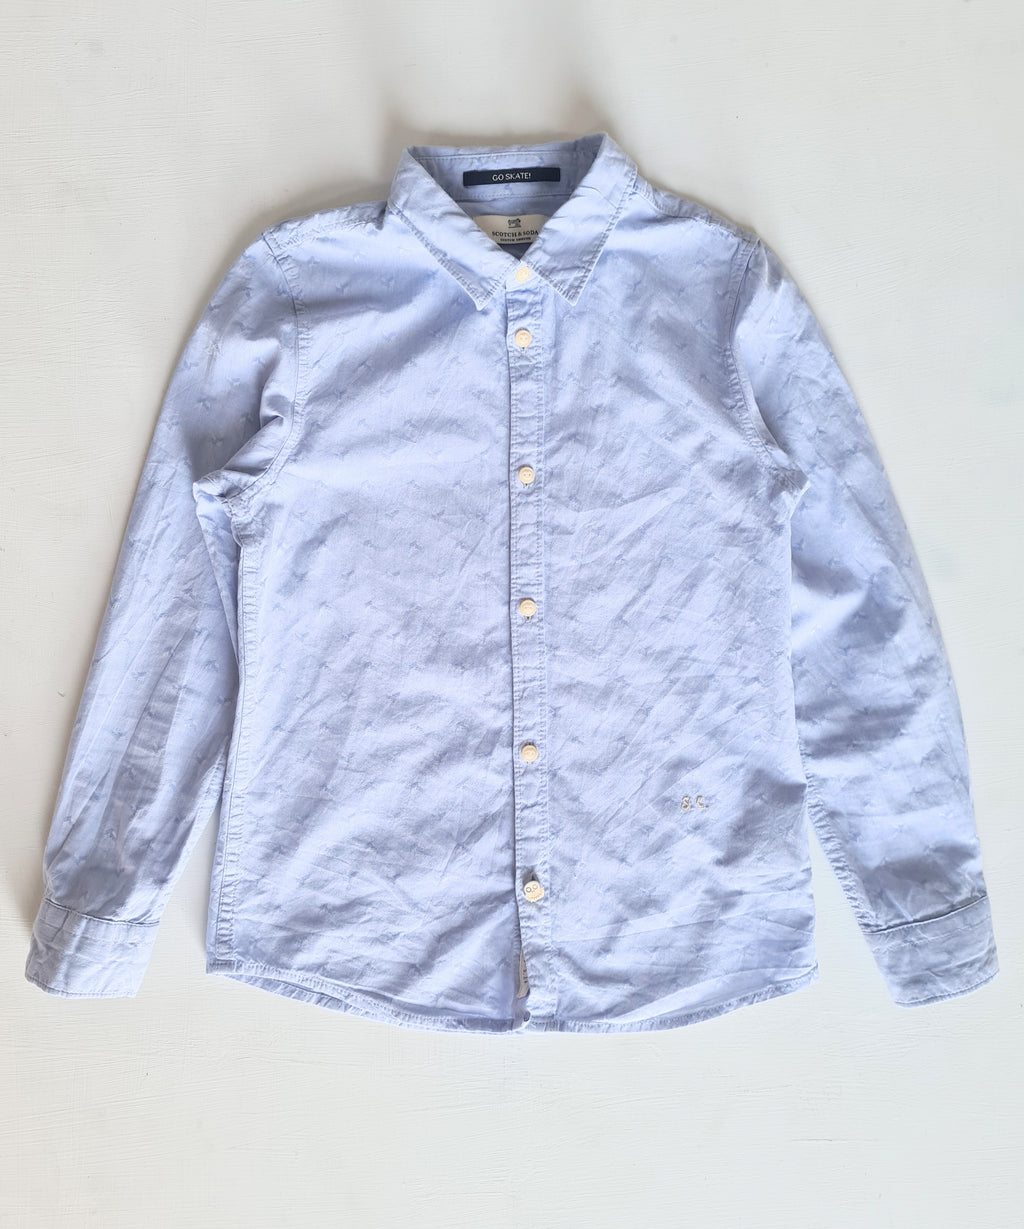 THRIFT Scotch and Soda - Pale Bkue Shirt Size 8